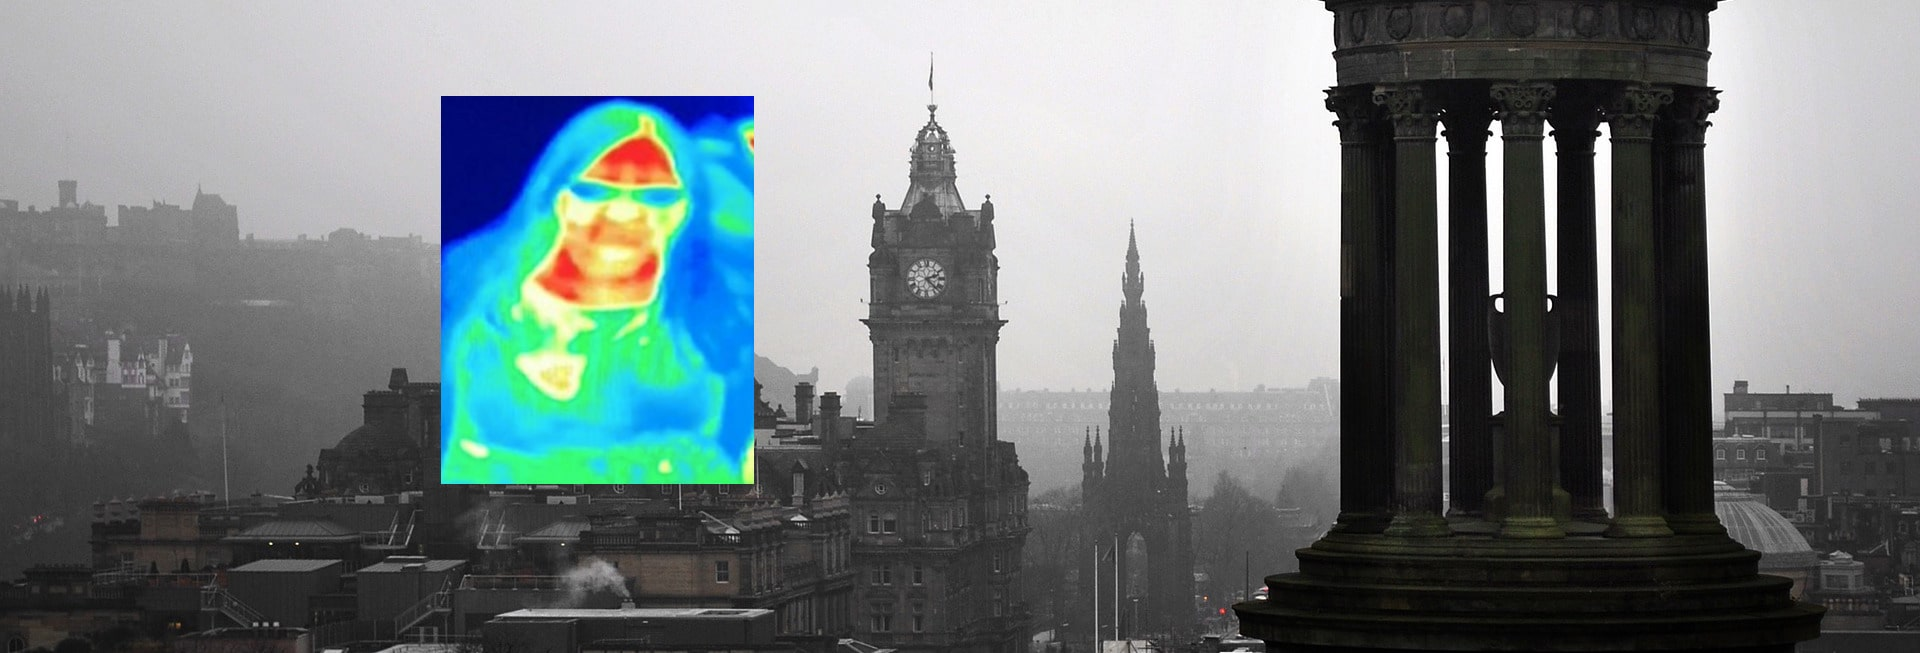 breast cancer detected by thermal camera